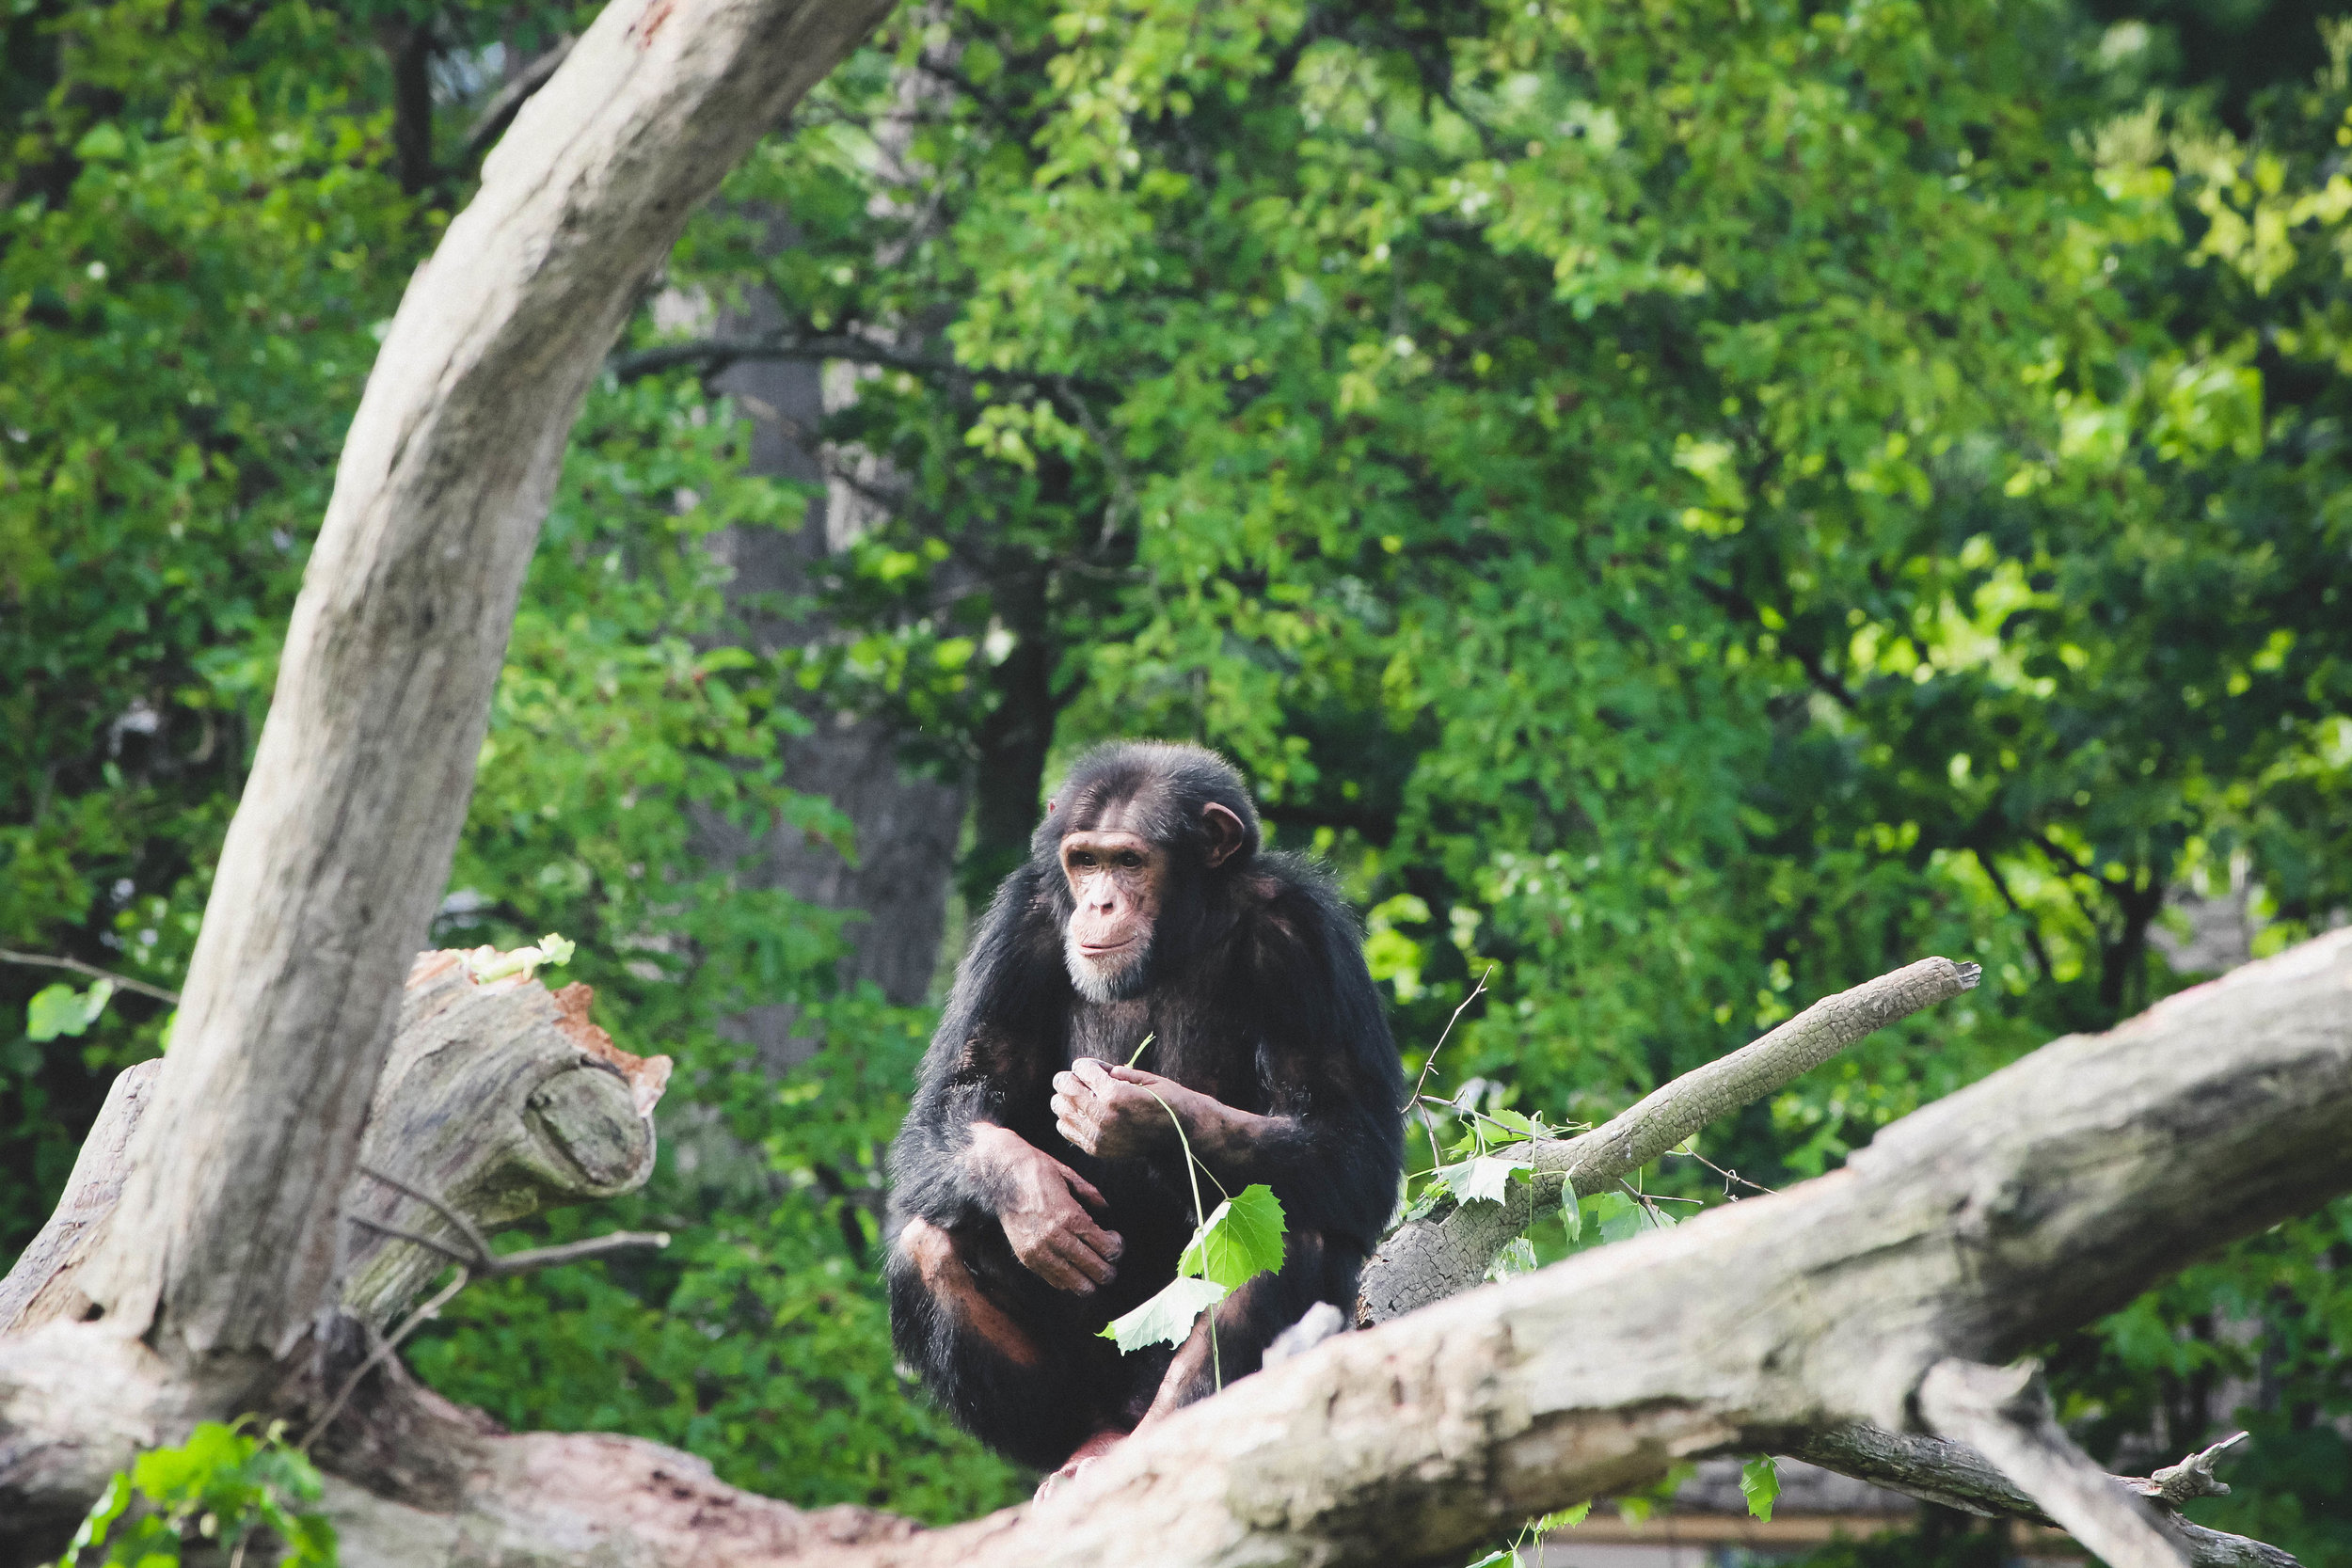 Chimpanzee at the Detroit Zoo | Image by Taylor Ifland Photography